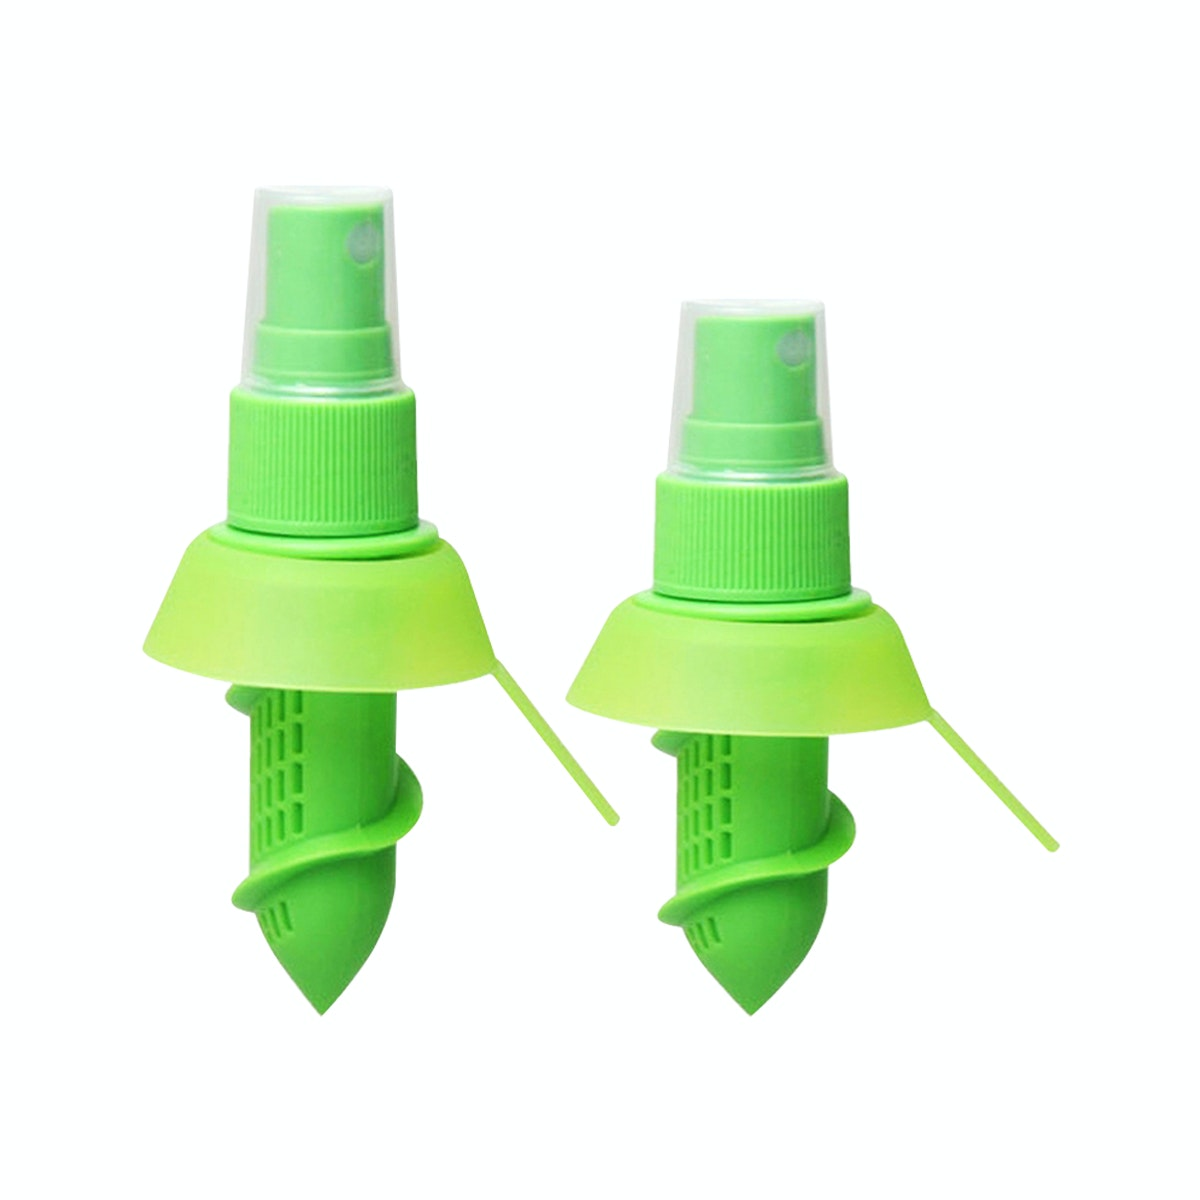 Kogara Lemon juice sprayer,Citrus Sprayer 2 pcs in